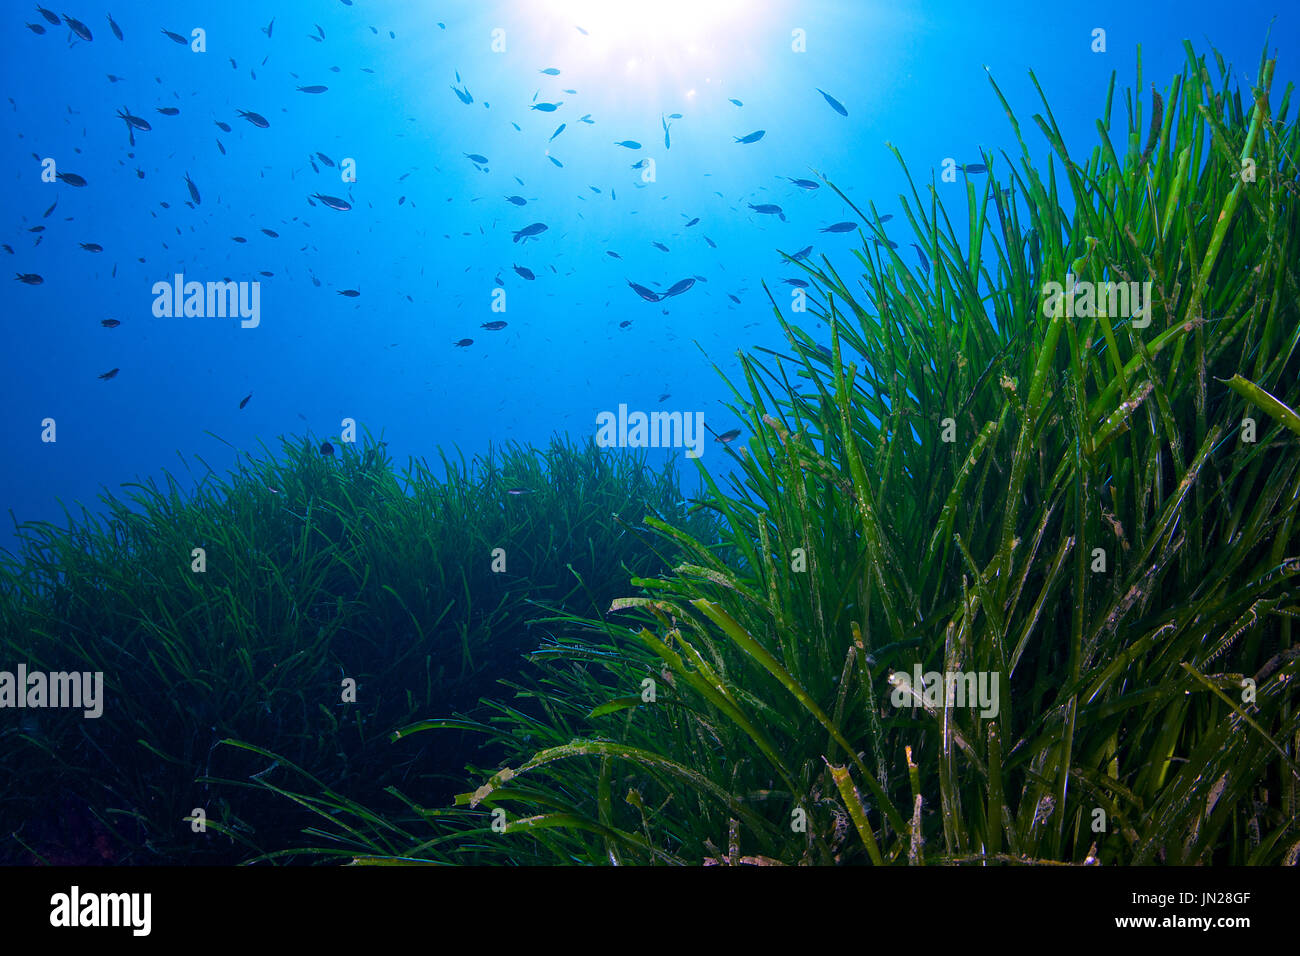 Underwater scene showing neptune grass (Posidonia oceanica) meadows at Ses Salines Natural Park at Formentera (Balearic Islands, Spain) - Stock Image